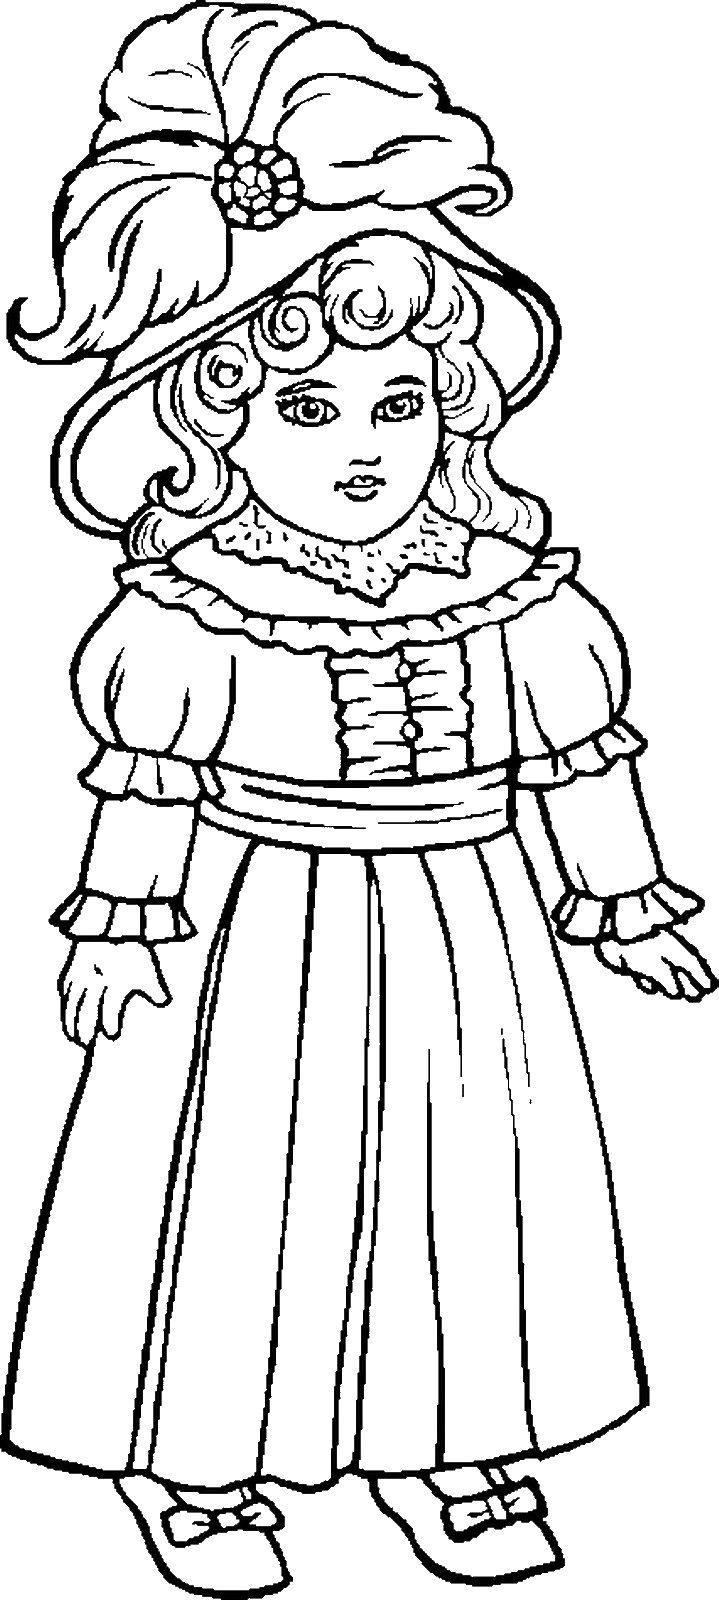 coloring doll print best 21 lol dolls coloring pages printable best coloring doll print coloring